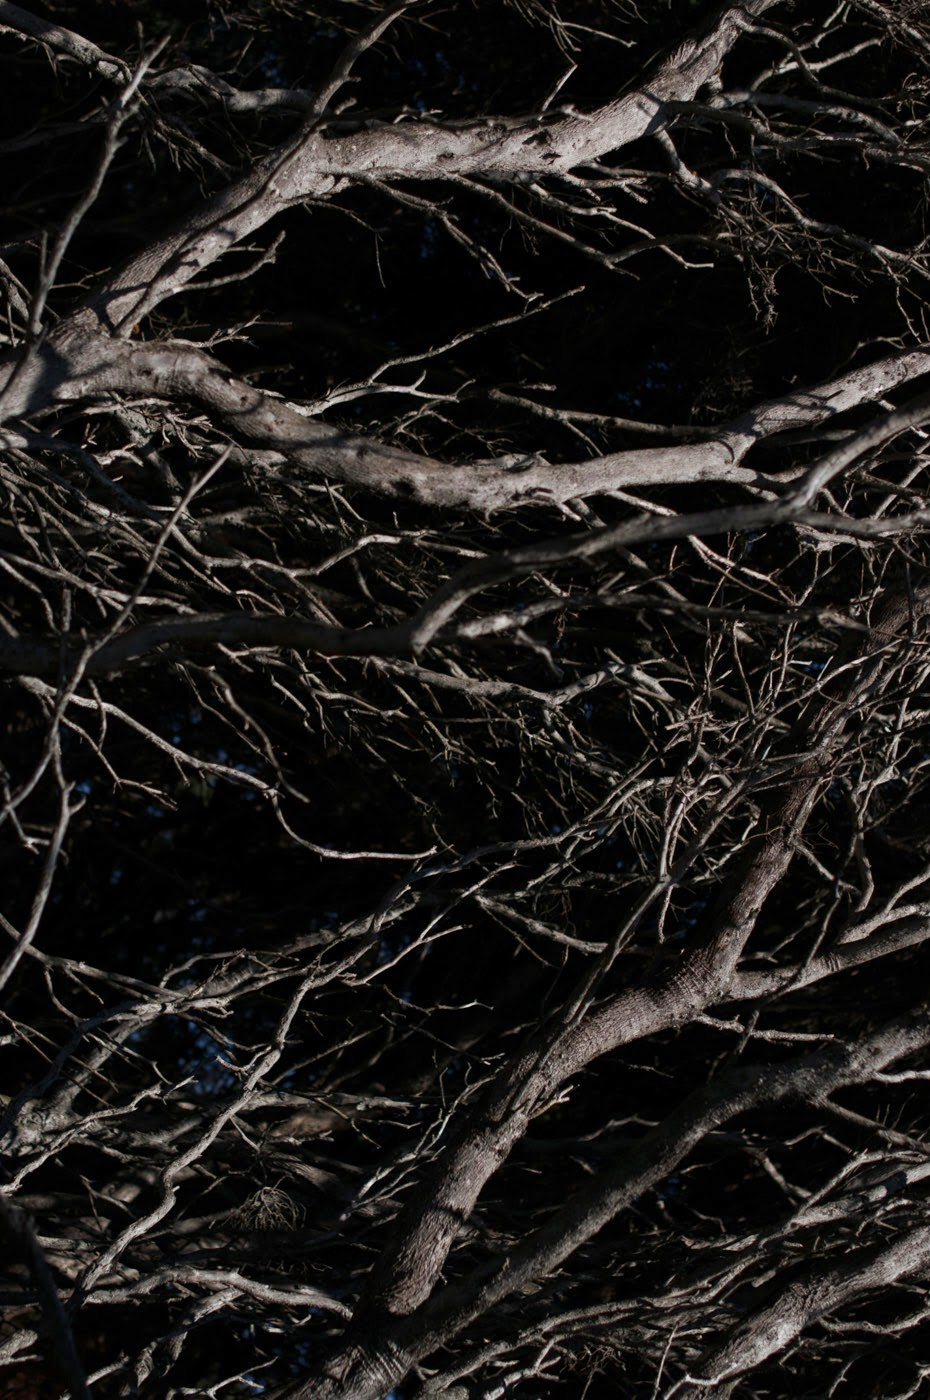 a photographic series of silhouettes based my observations of moonlit coastal moonah woodlands in Anglesea, Victoria Australia called night garden. Photographed by Tim Macauley from The light monkey Collective and posted in the fine art blog you won't see this at MoMA